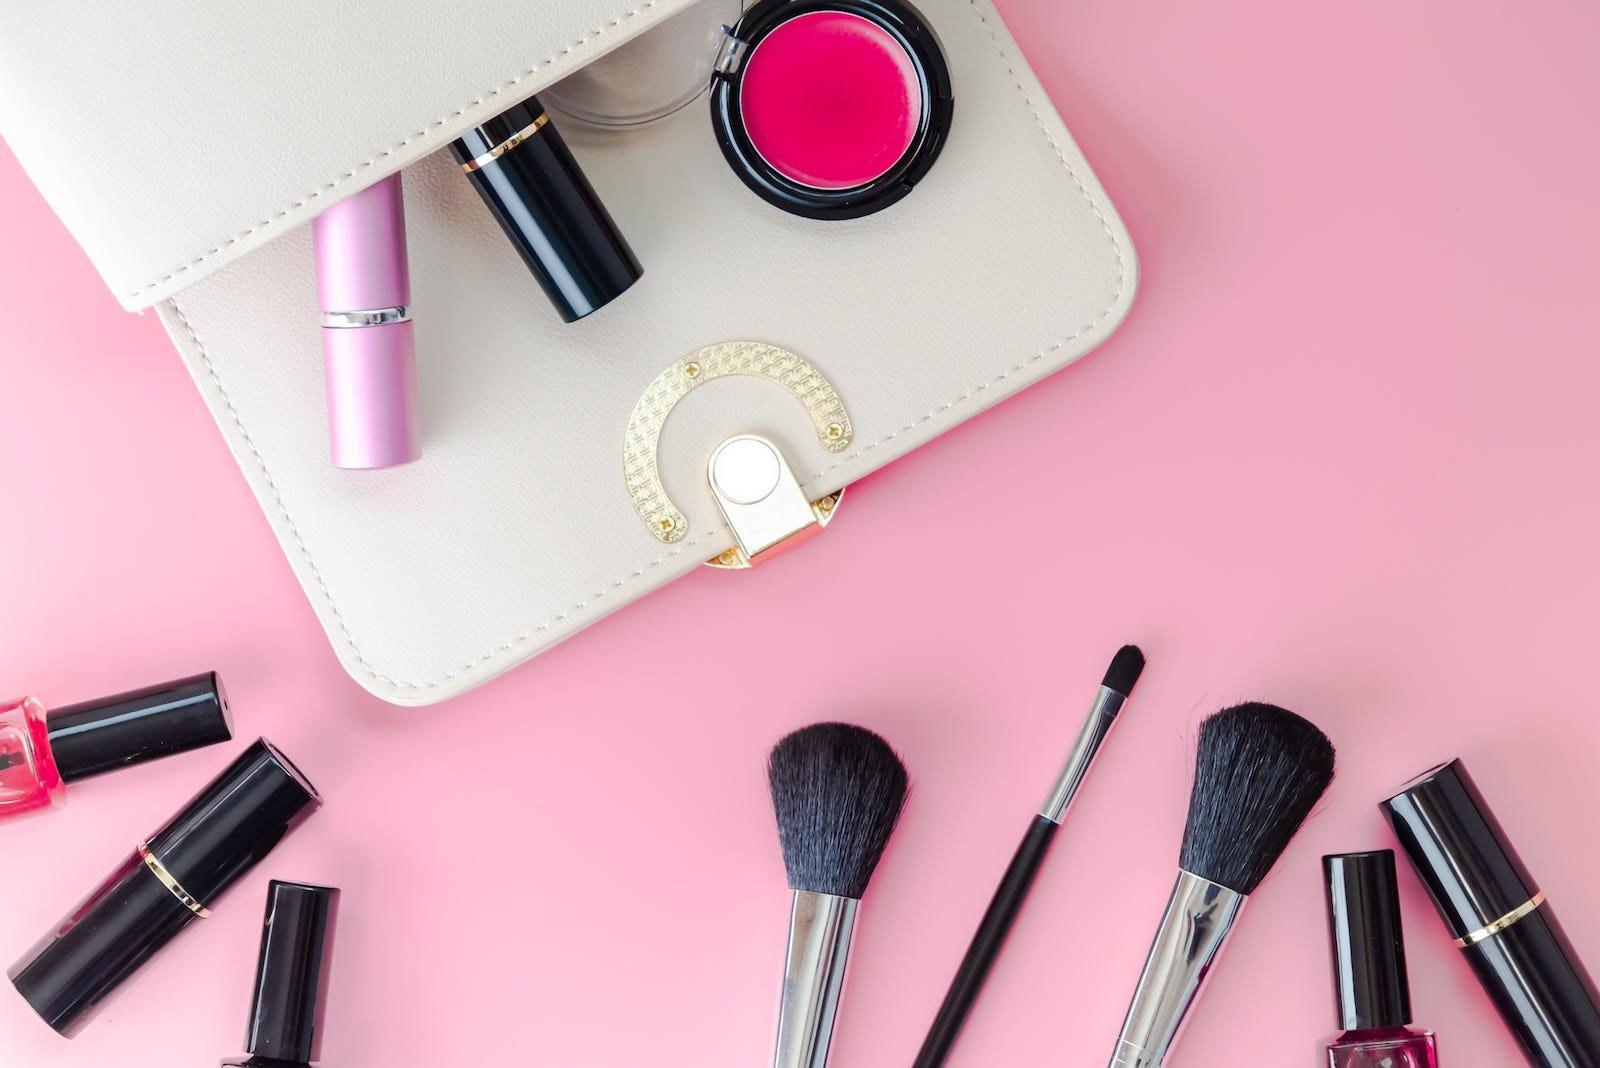 The best Cyber Monday beauty deals you can get right now: Ulta, Sephora, and more